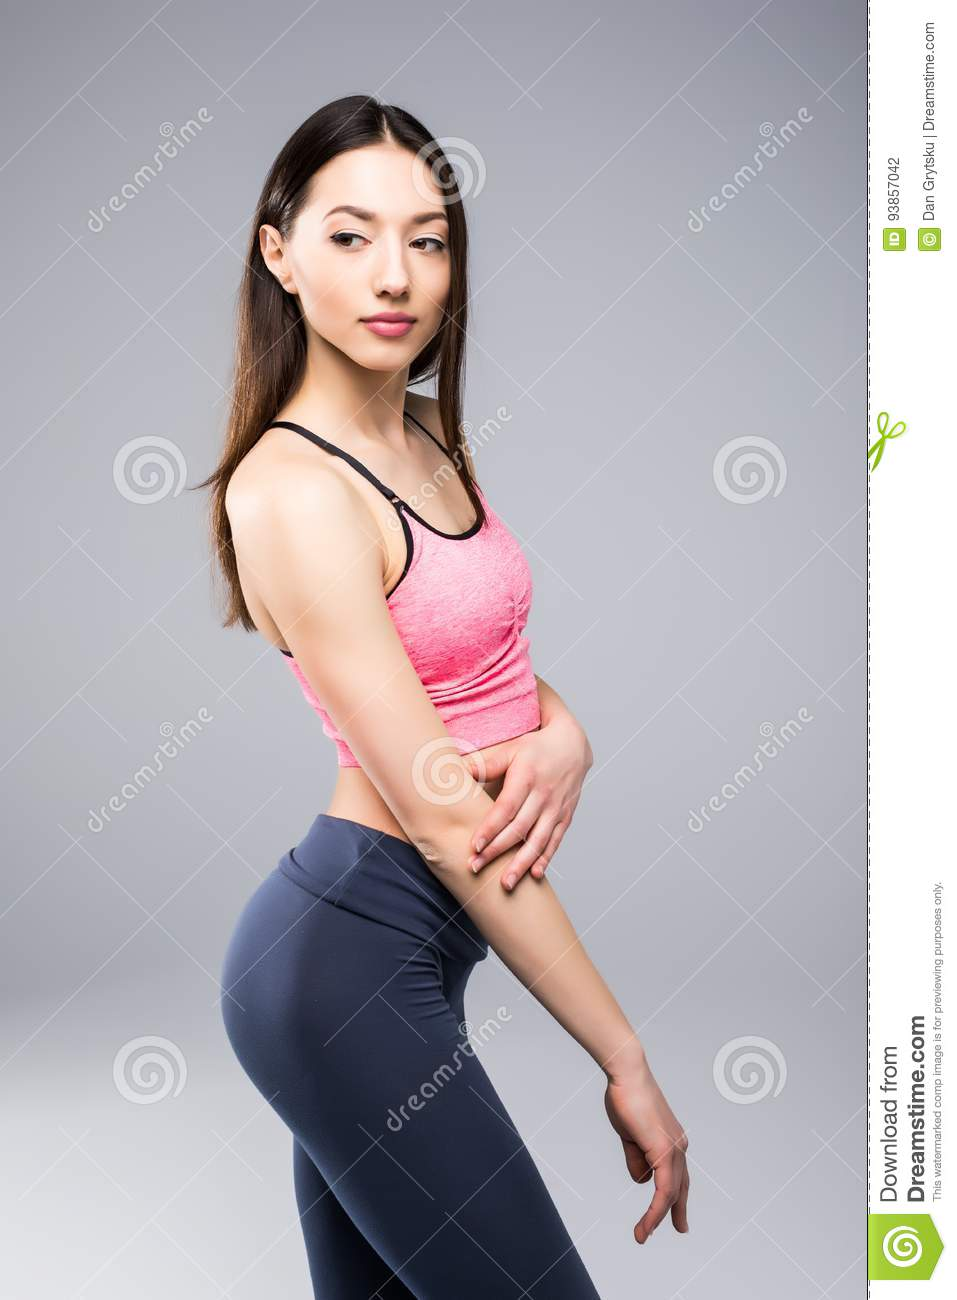 6c86f9afdd Fitness woman in sports clothes posing on gray background, studio shot